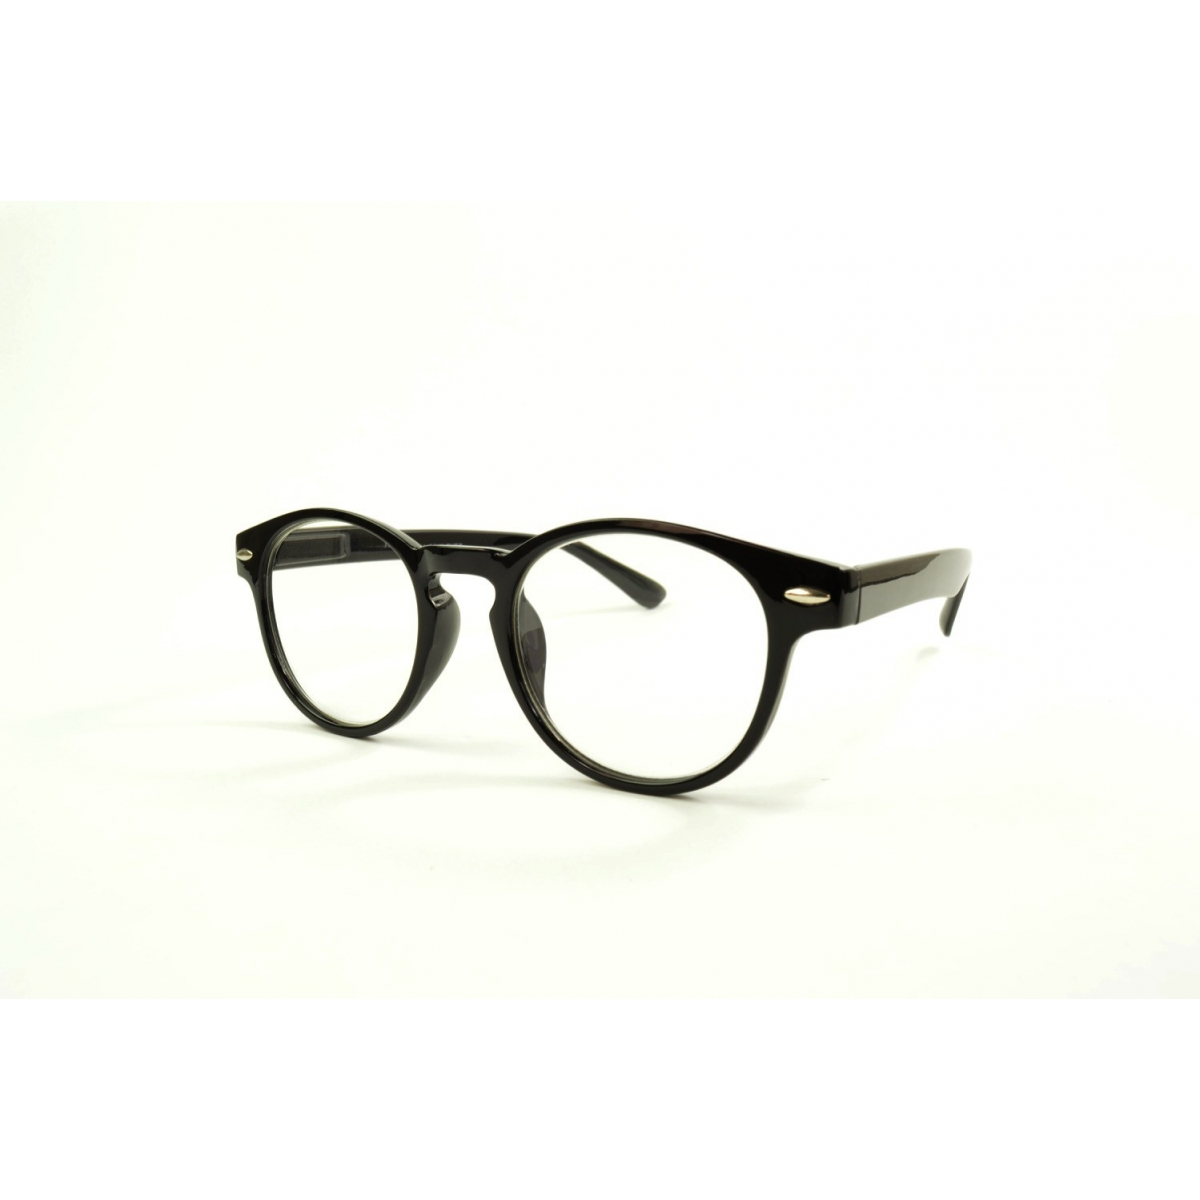 Round reading glasses retro with 2 studs on each sides of the frame